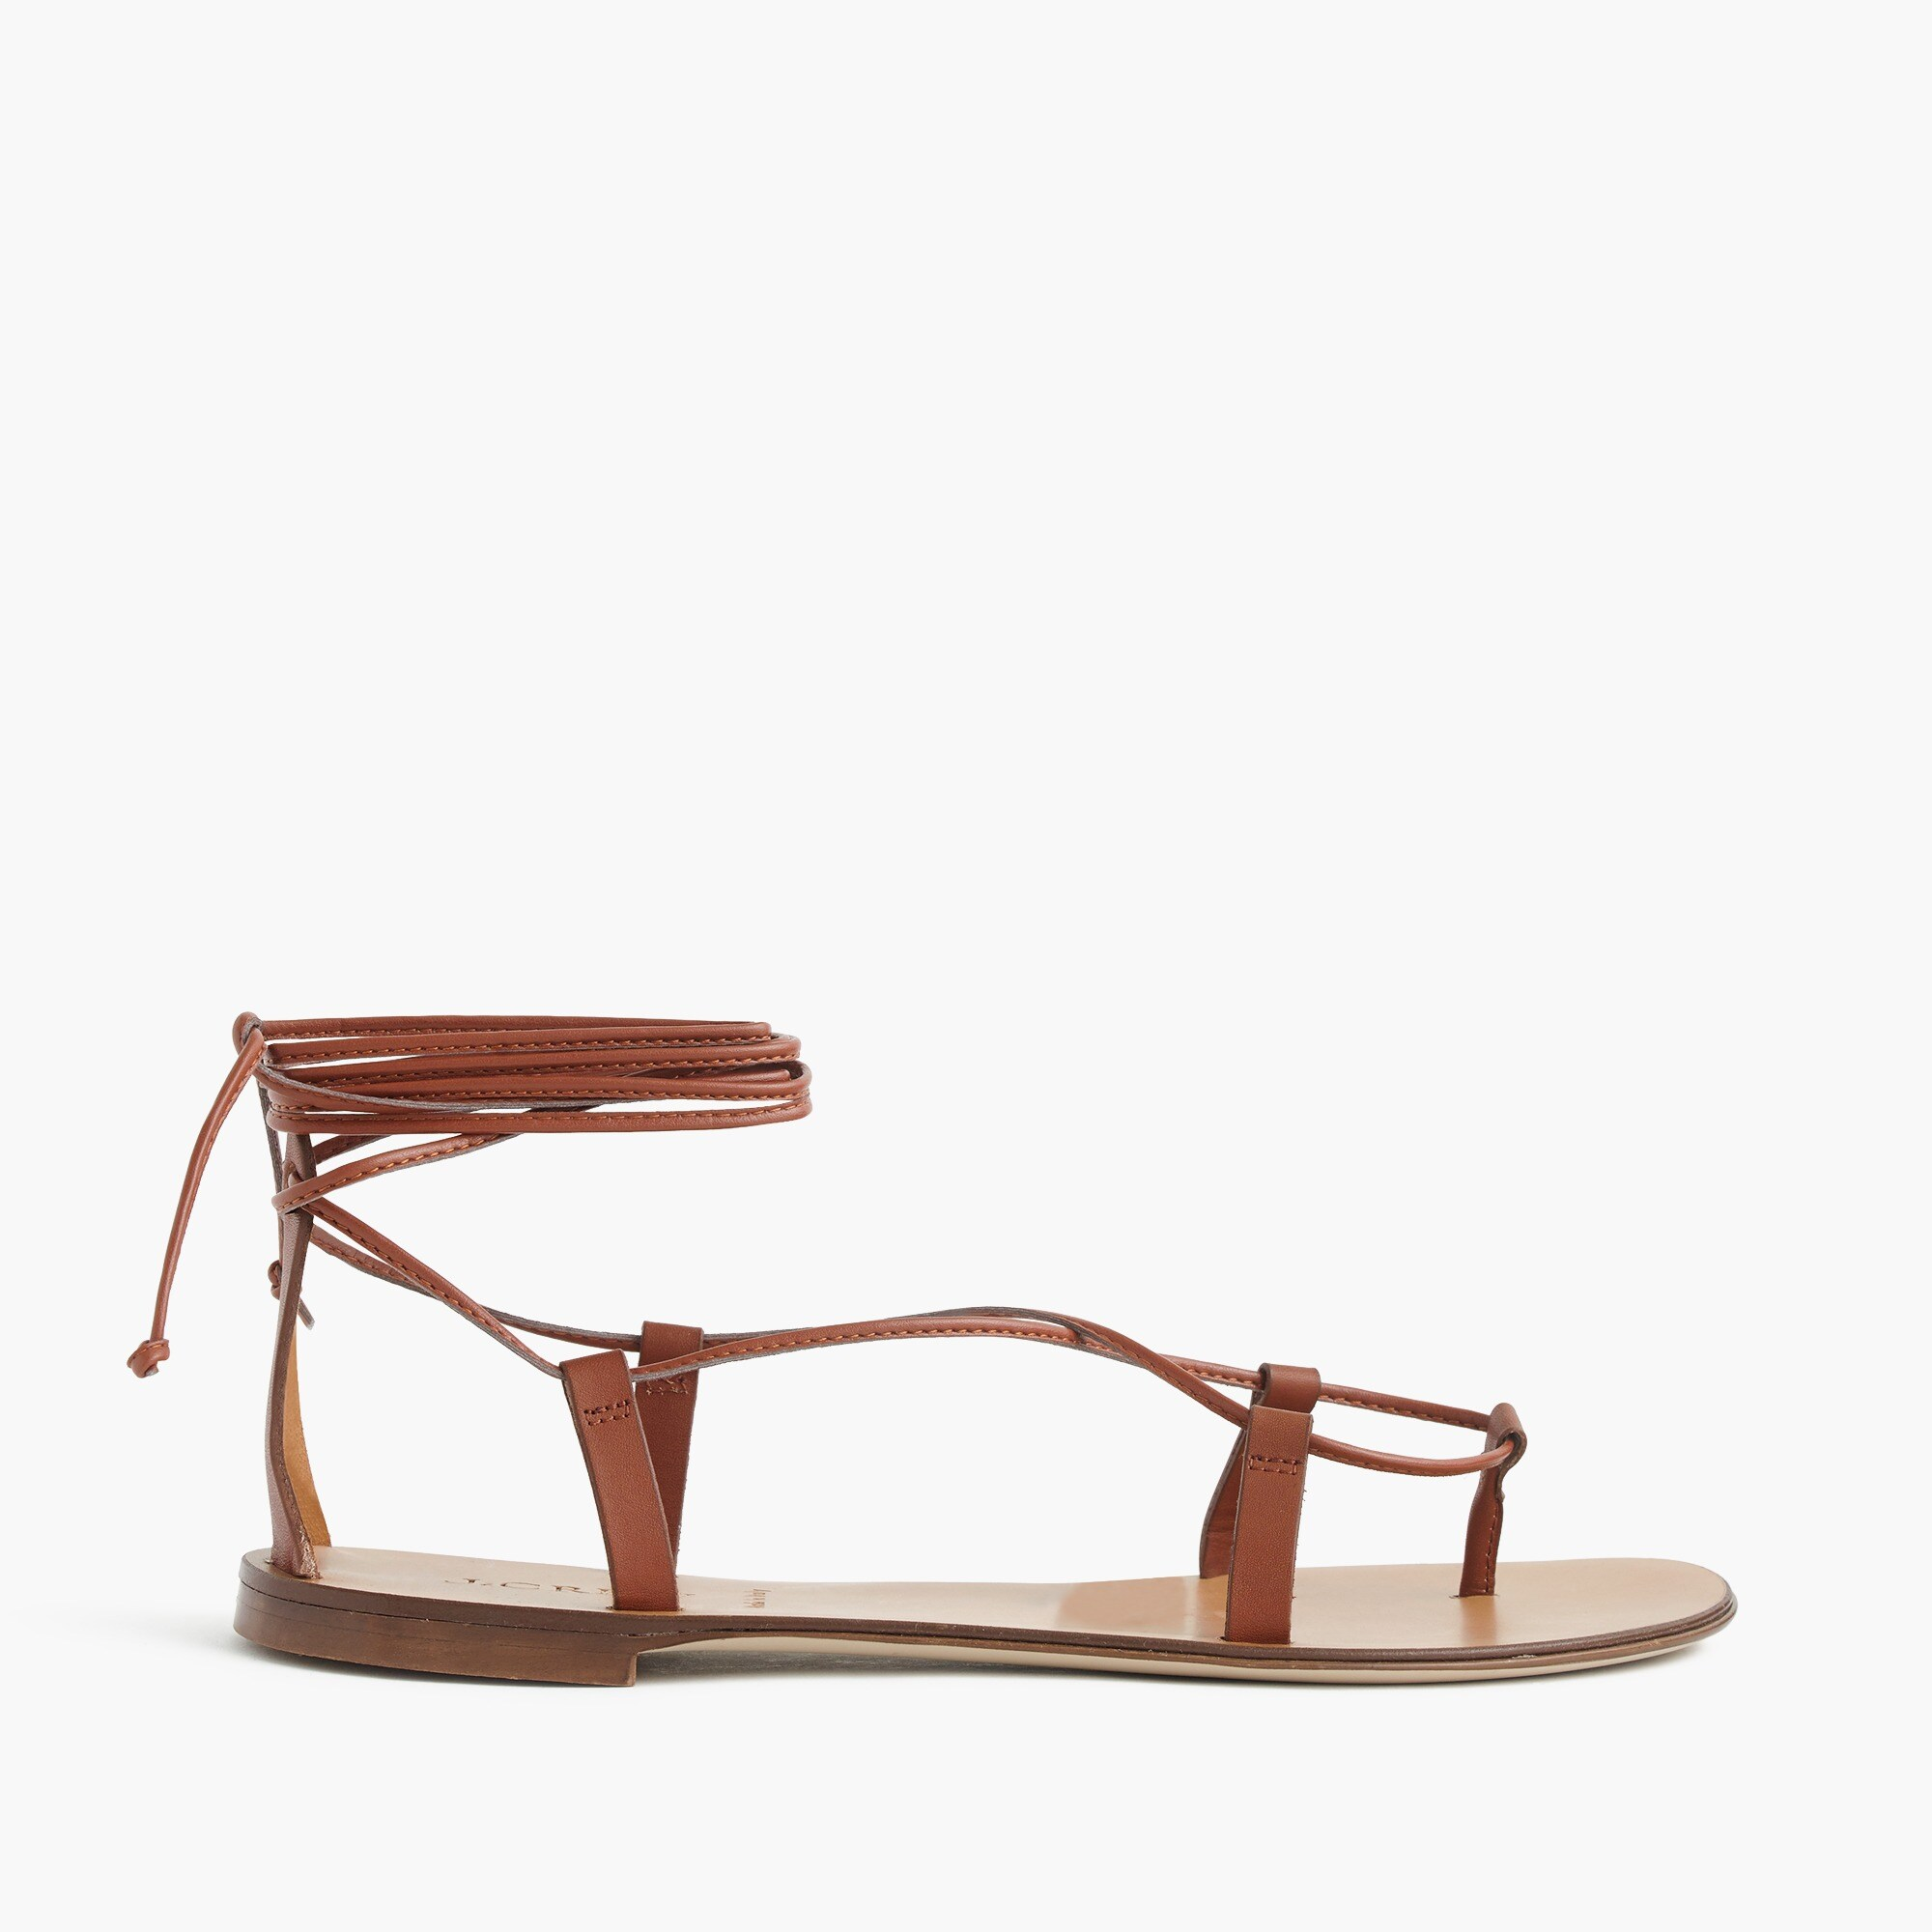 leather lace-up sandals : women sandals